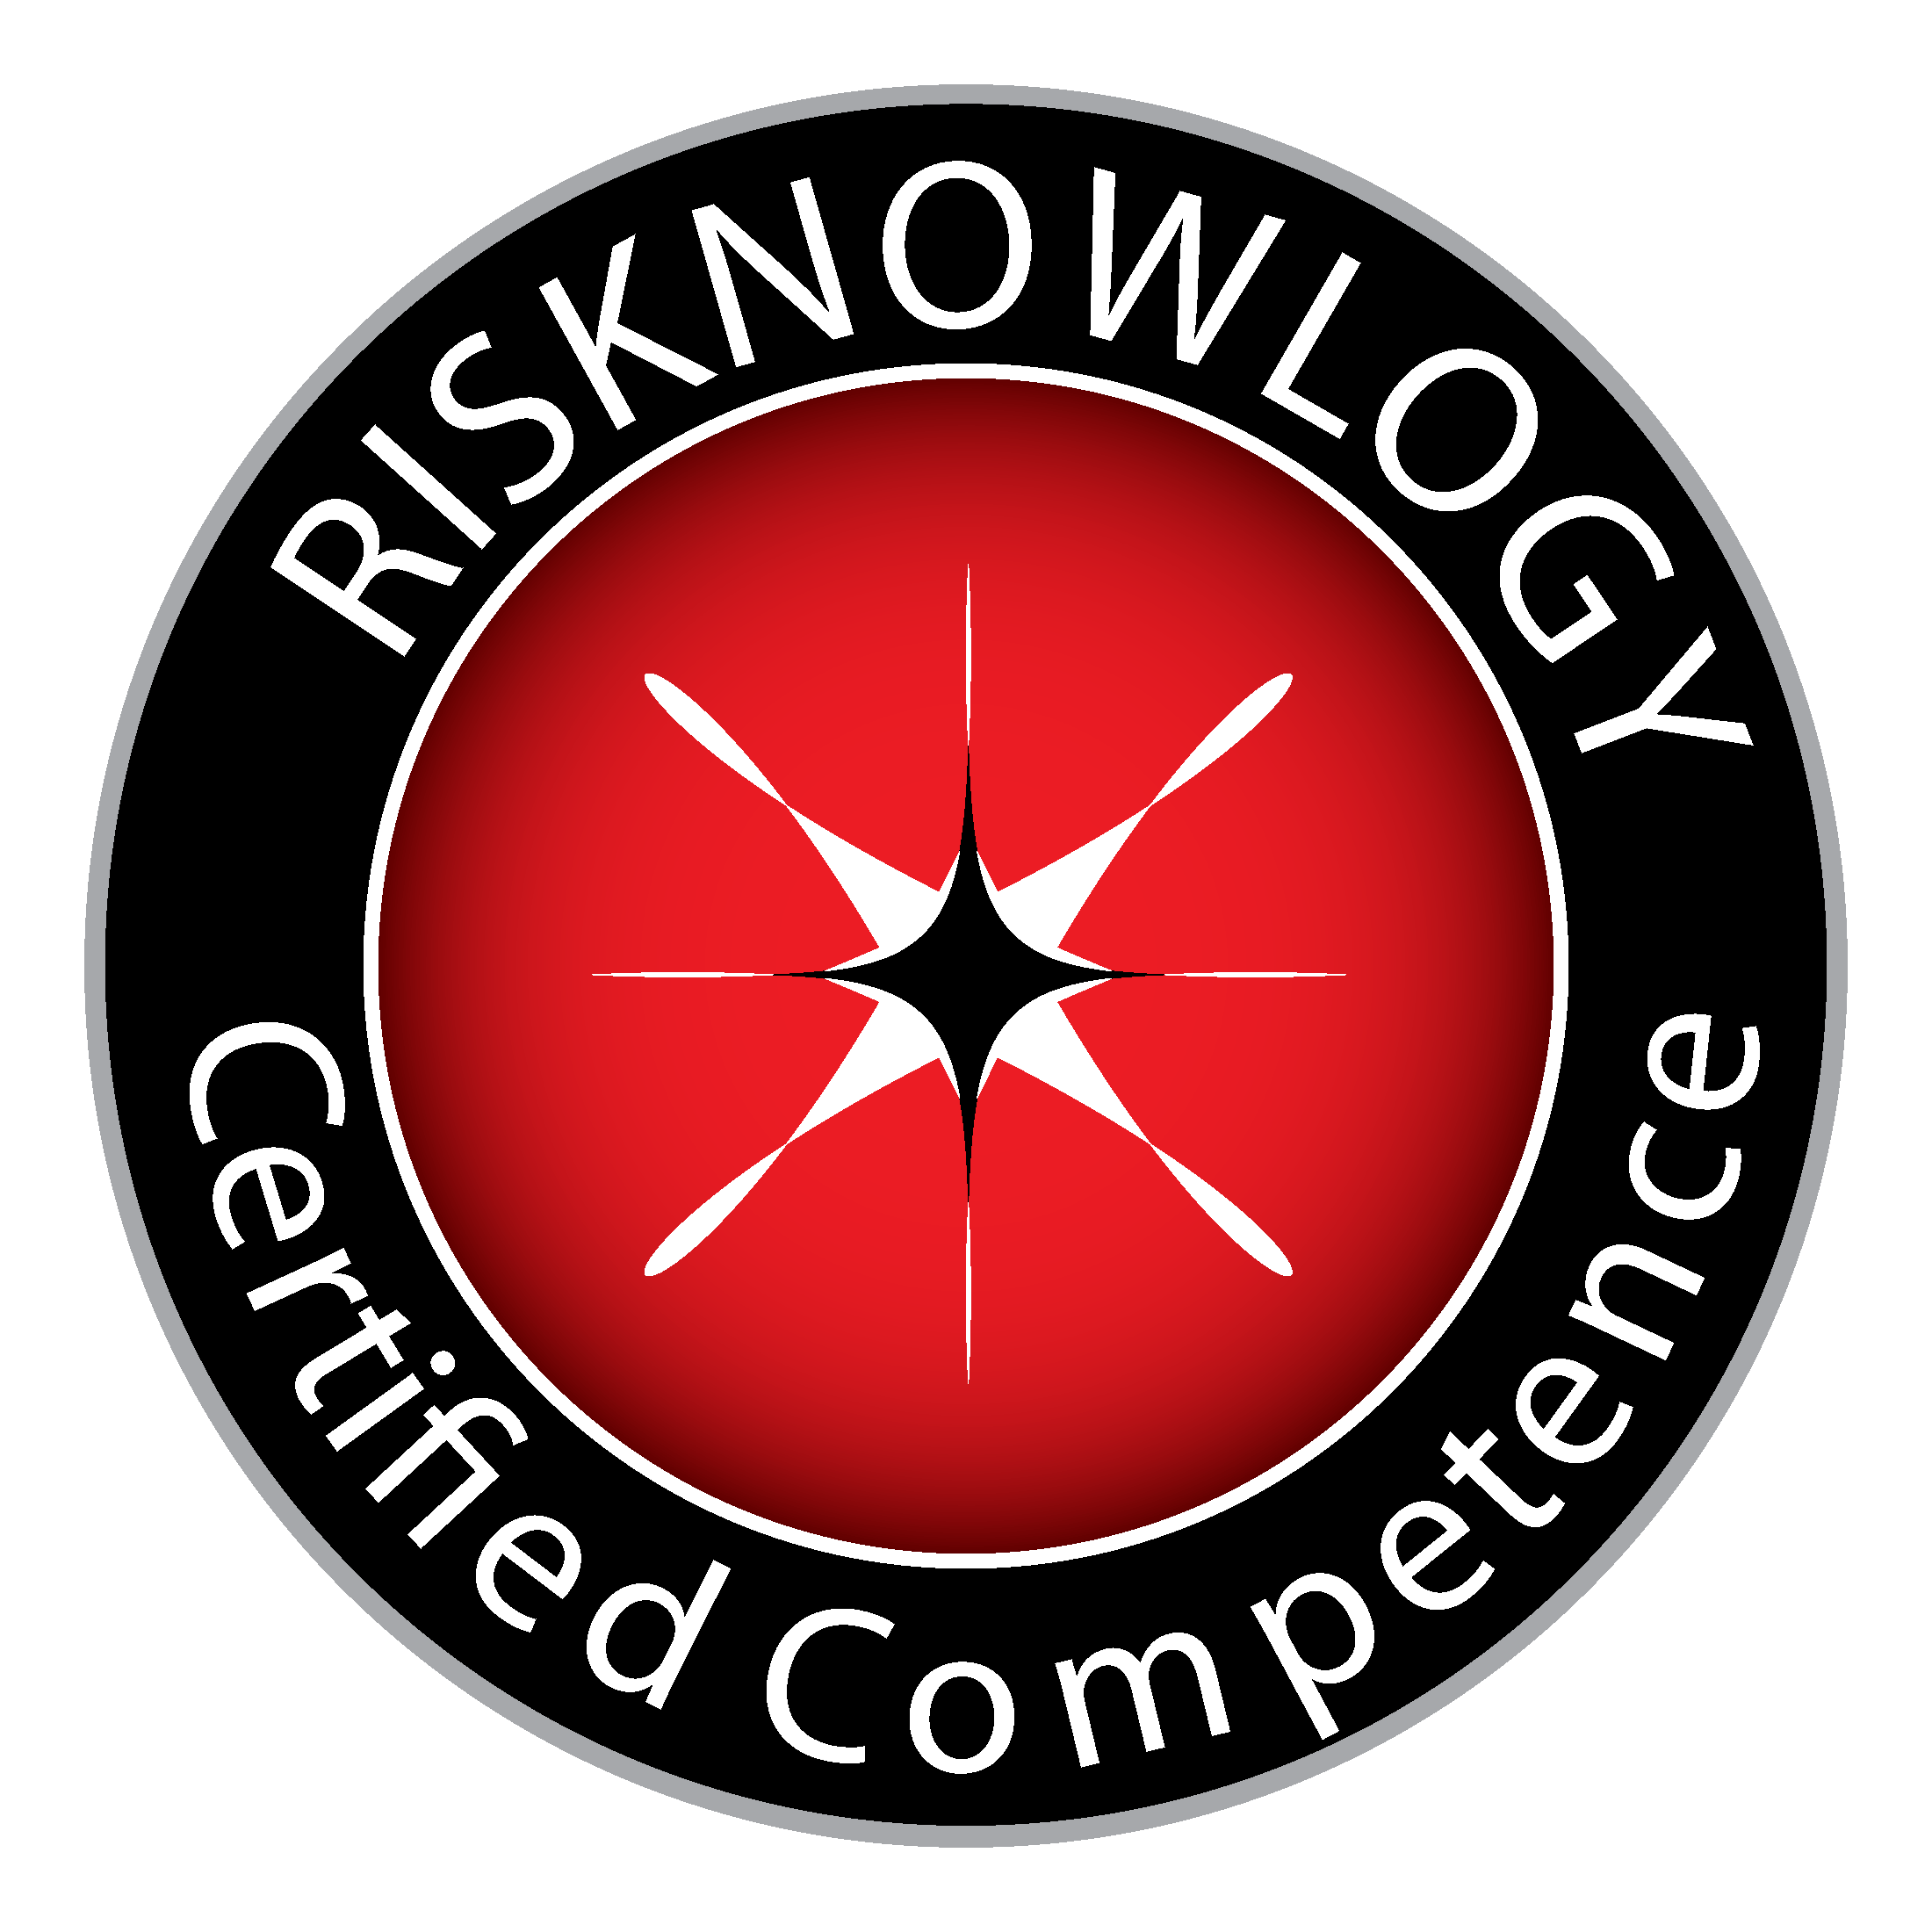 Risknowlogy Certified Competence Mark